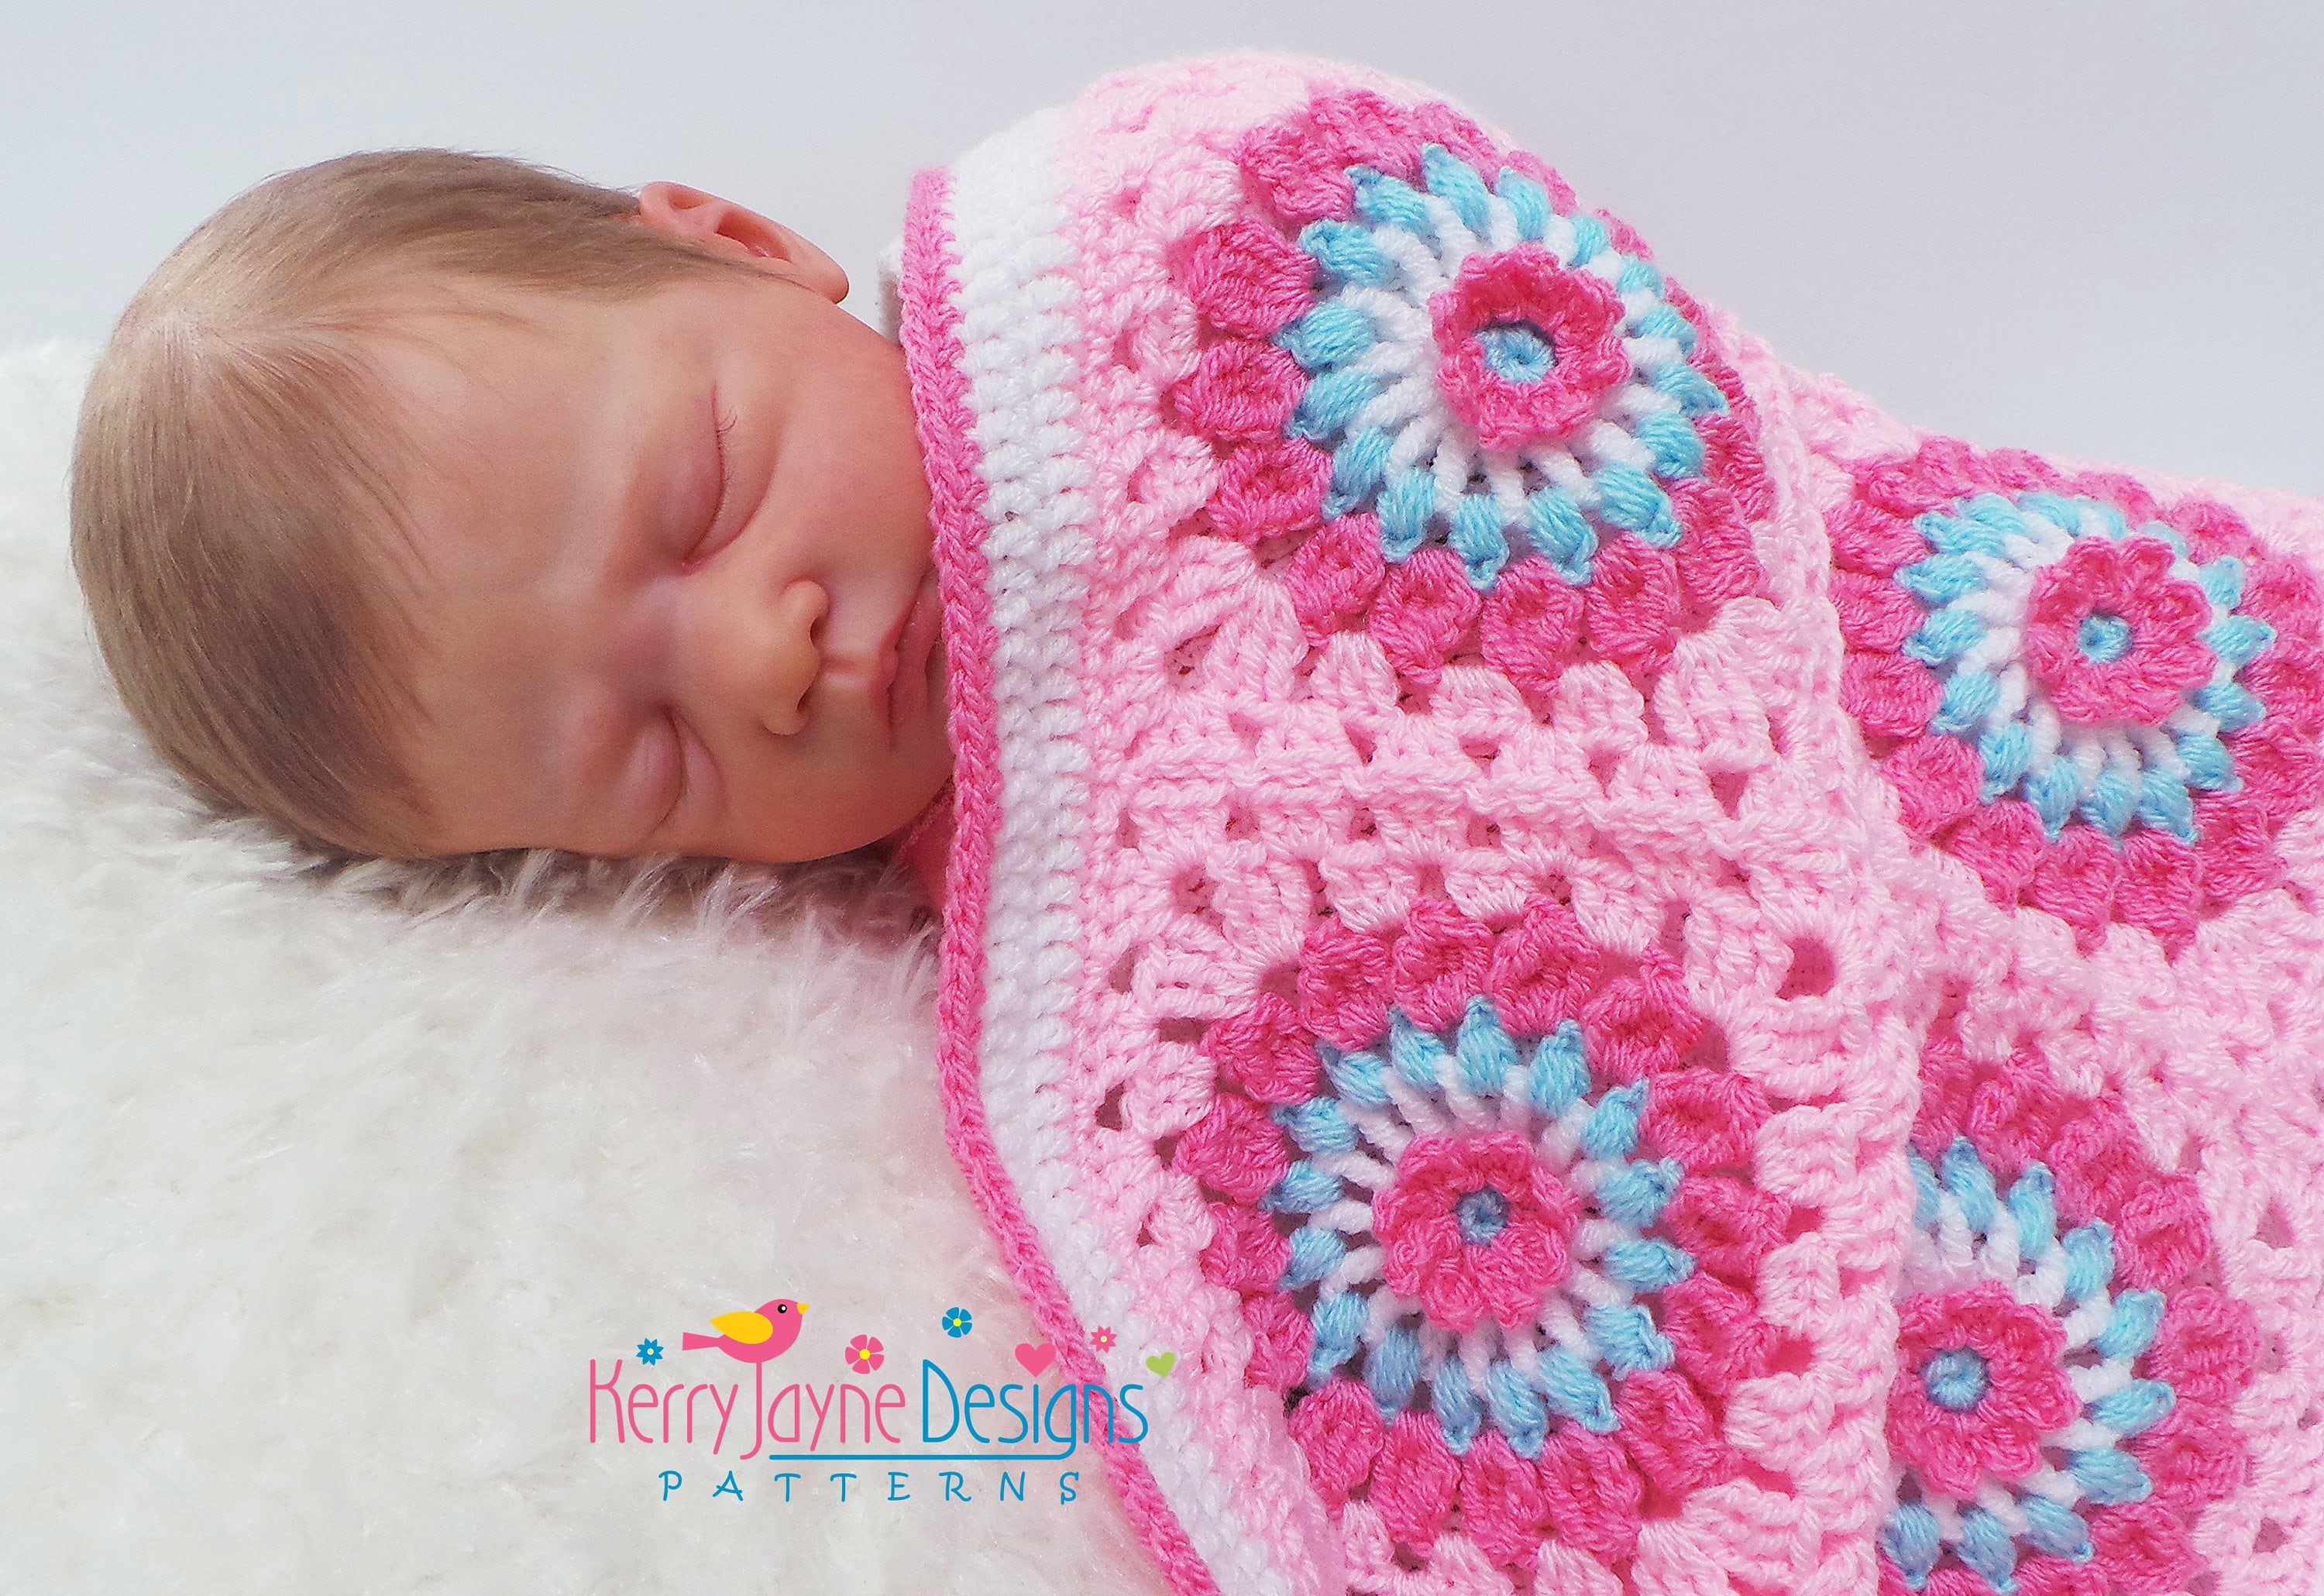 Amazing daisy crochet blanket pattern granny square blanket this is a digital file baditri Image collections